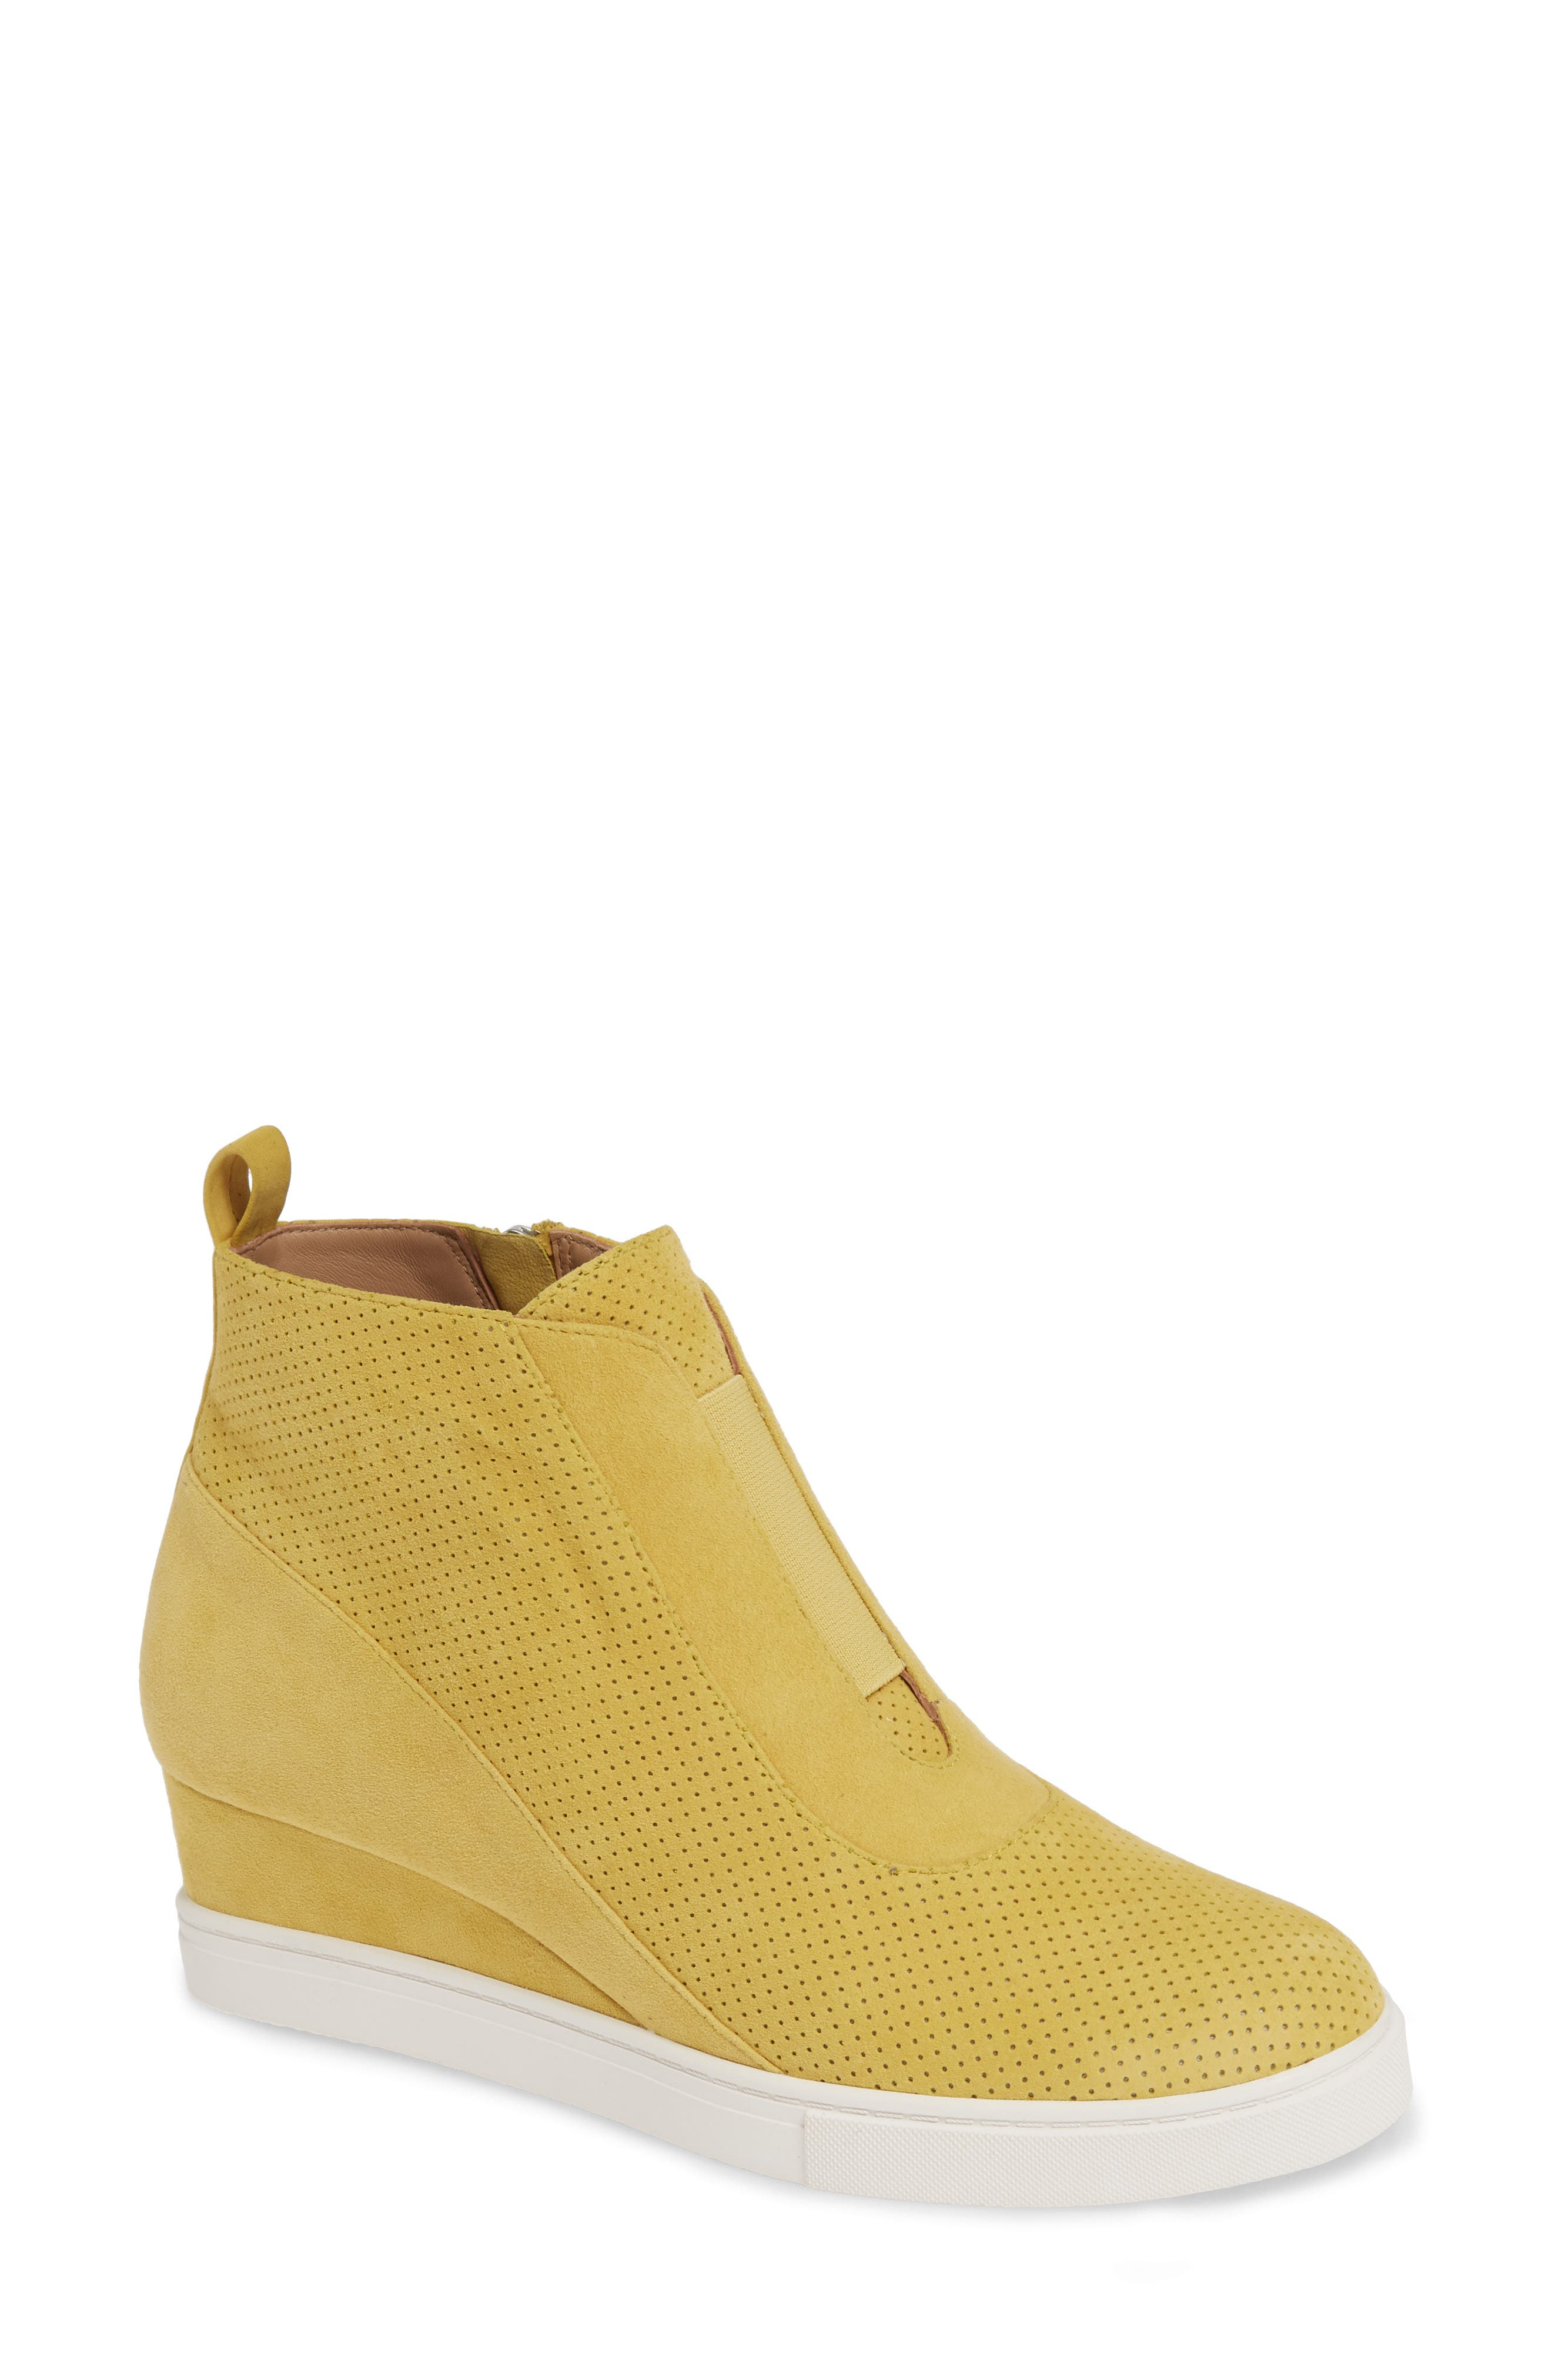 Linea Paolo Anna Wedge Sneaker- Yellow